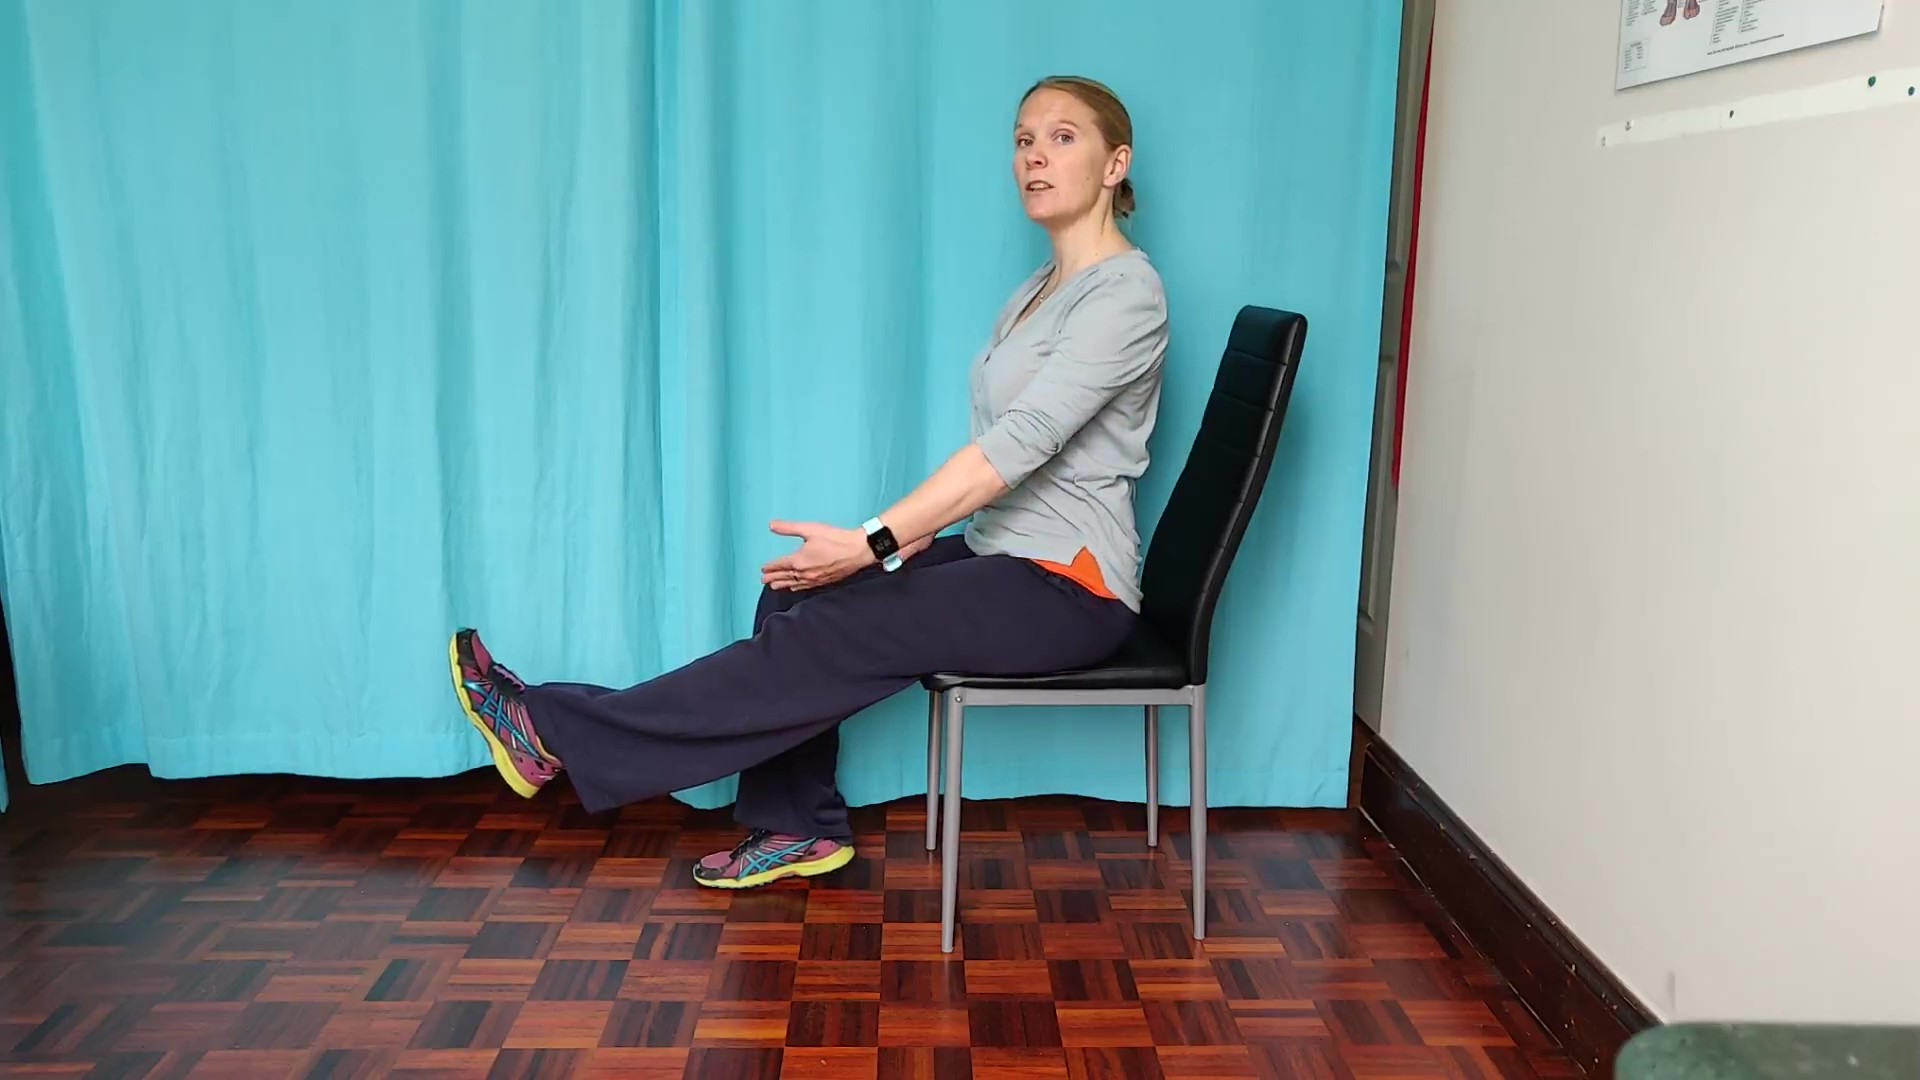 2019-Oct-1-Seated-hamstring-stretch